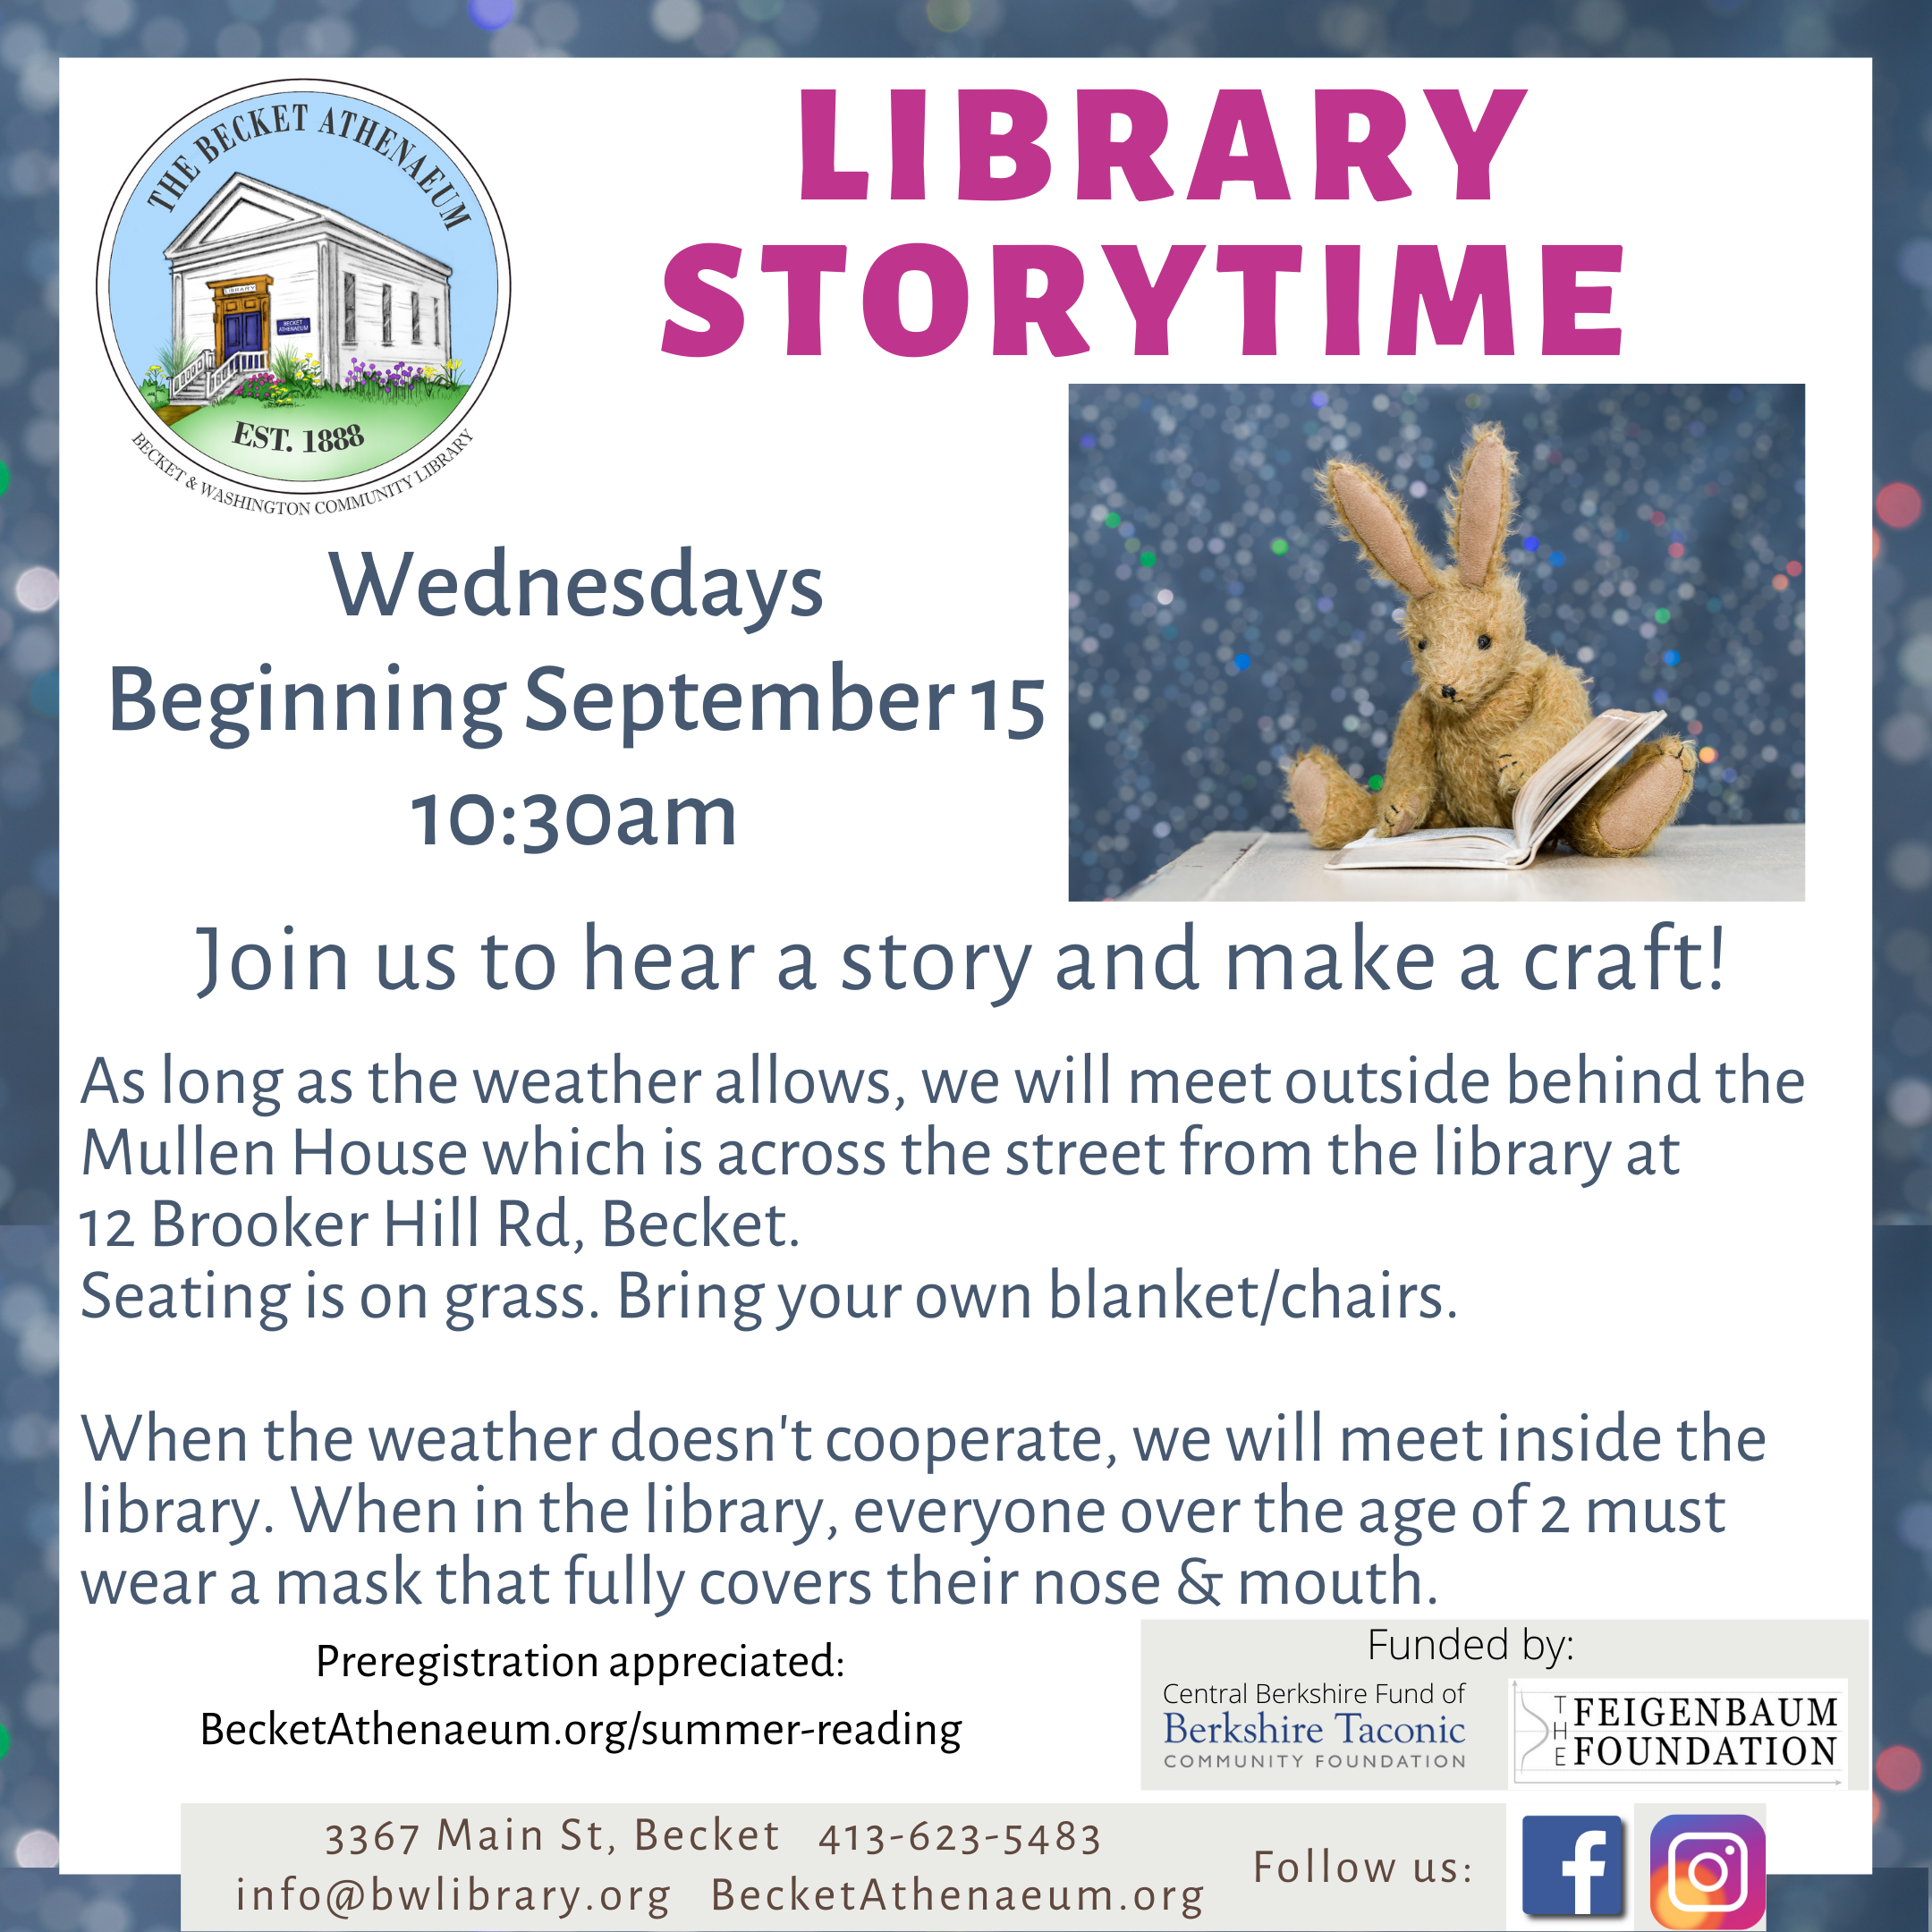 Becket Athenaeum Weekly Storytime with Crafts